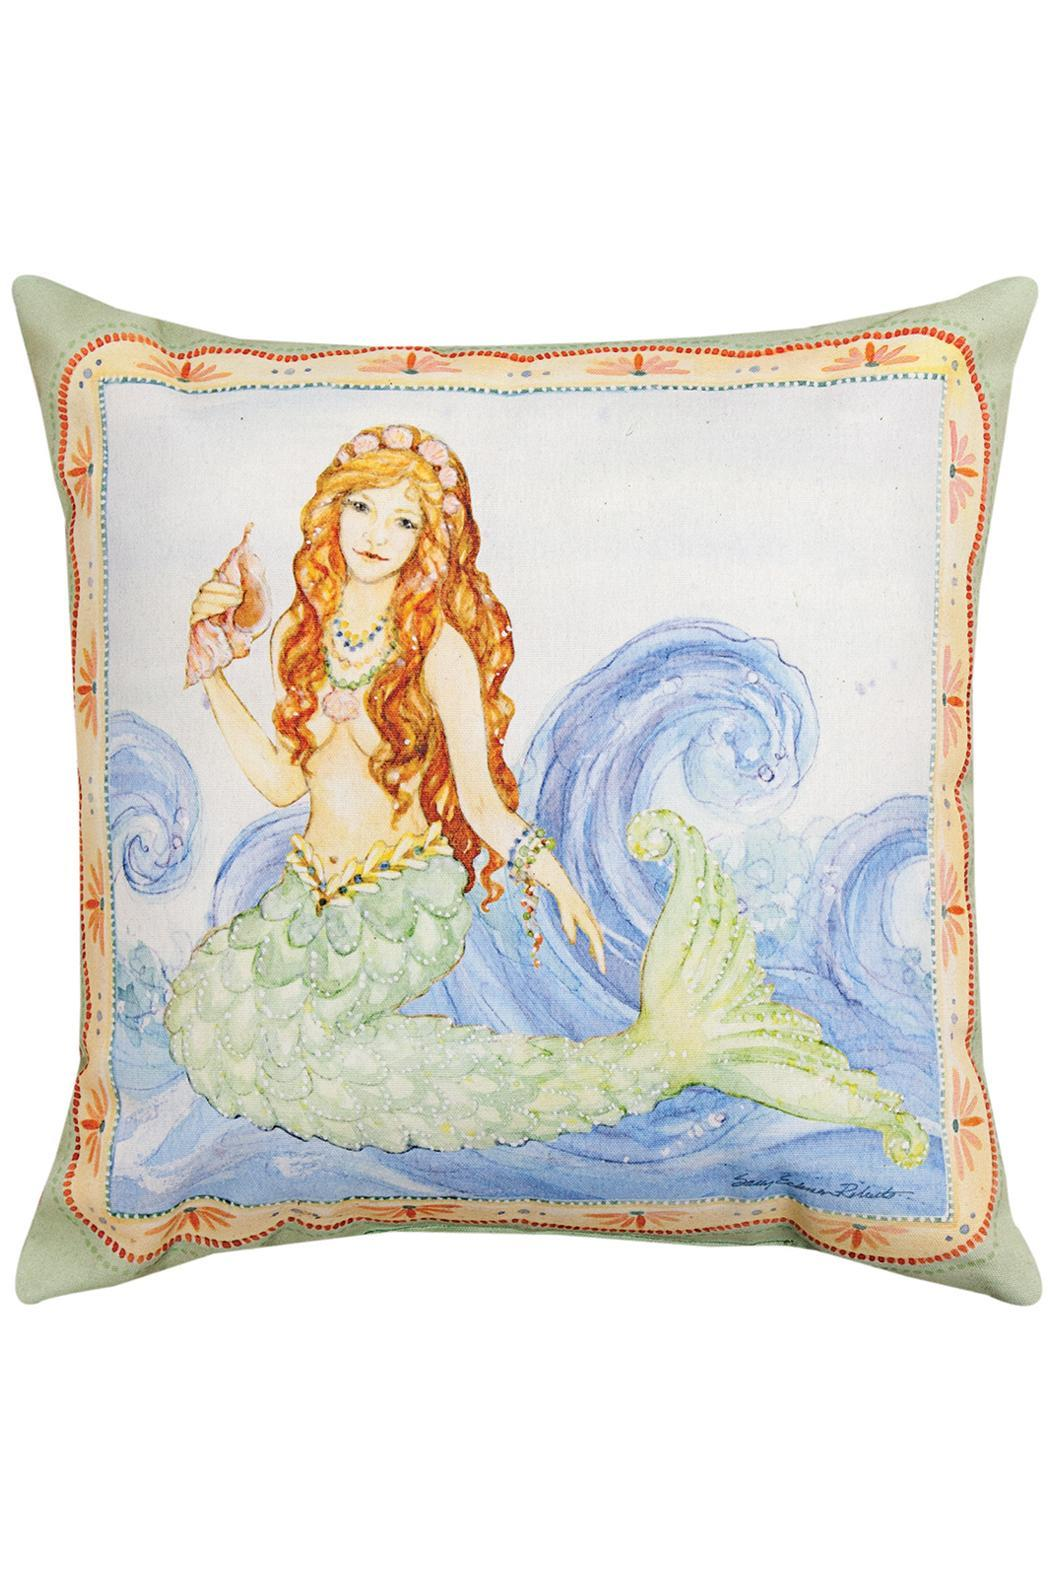 Manual Woodworkers And Weavers Mermaid Pillow From Jensen Beach